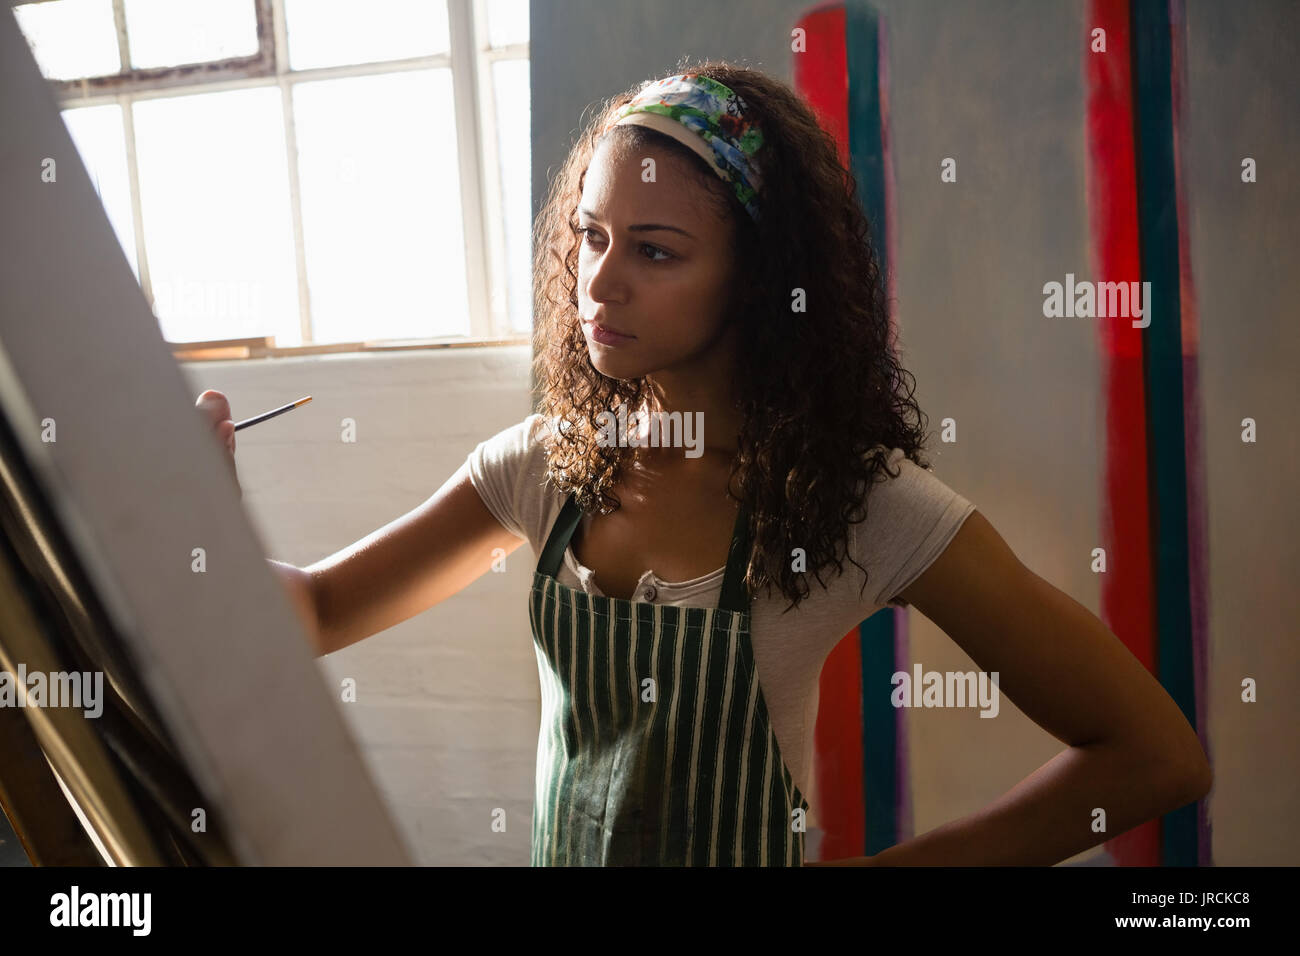 Woman painting on artists canvas in art class - Stock Image